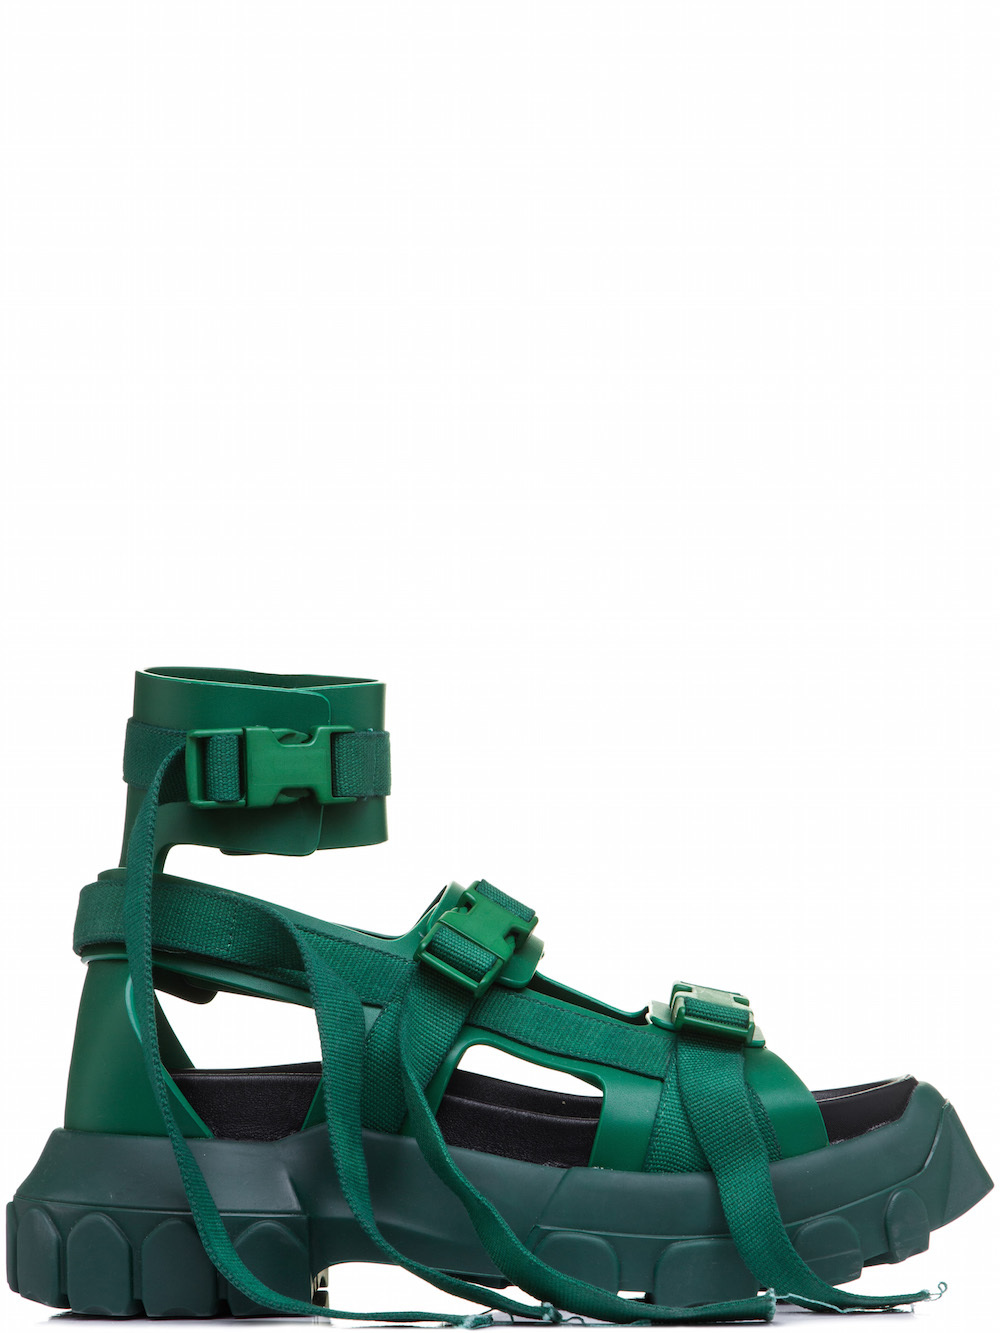 RICK OWENS HIKING SPARTAN SANDALS IN GREEN